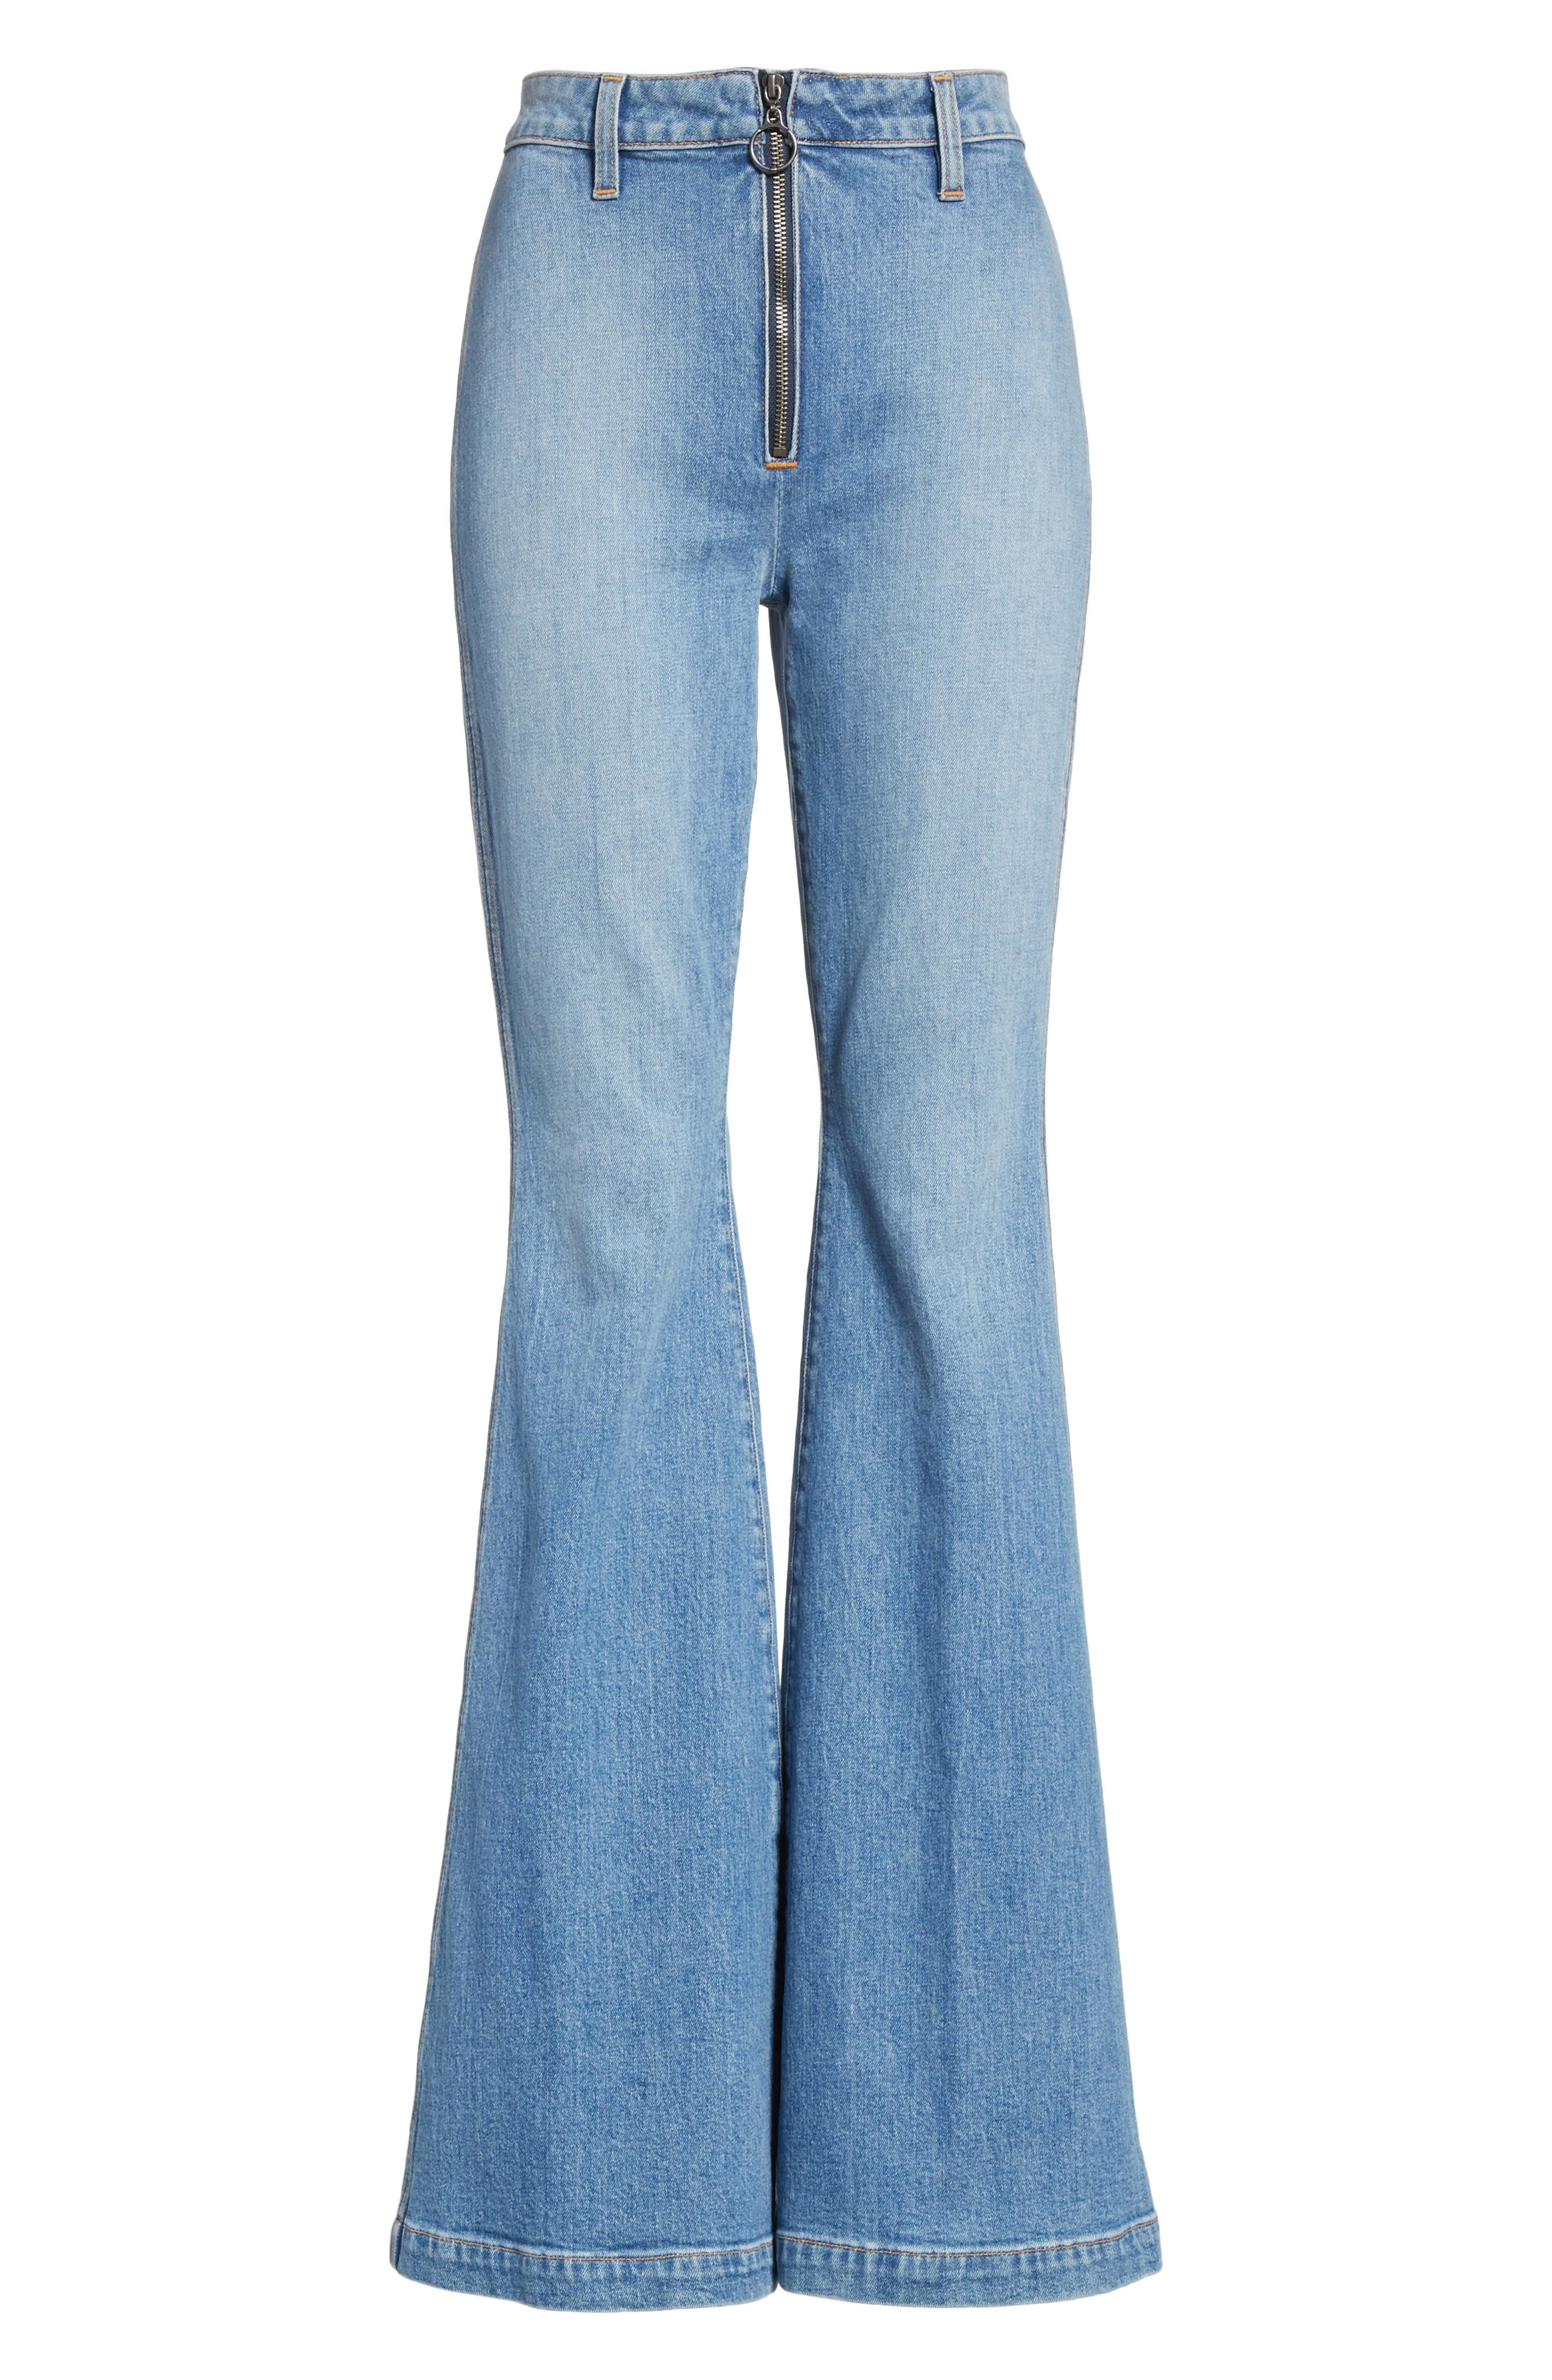 AO.LA Beautiful Exposed Zip Bell Bottom Jeans,                             Alternate thumbnail 6, color,                             Sweet Emotion